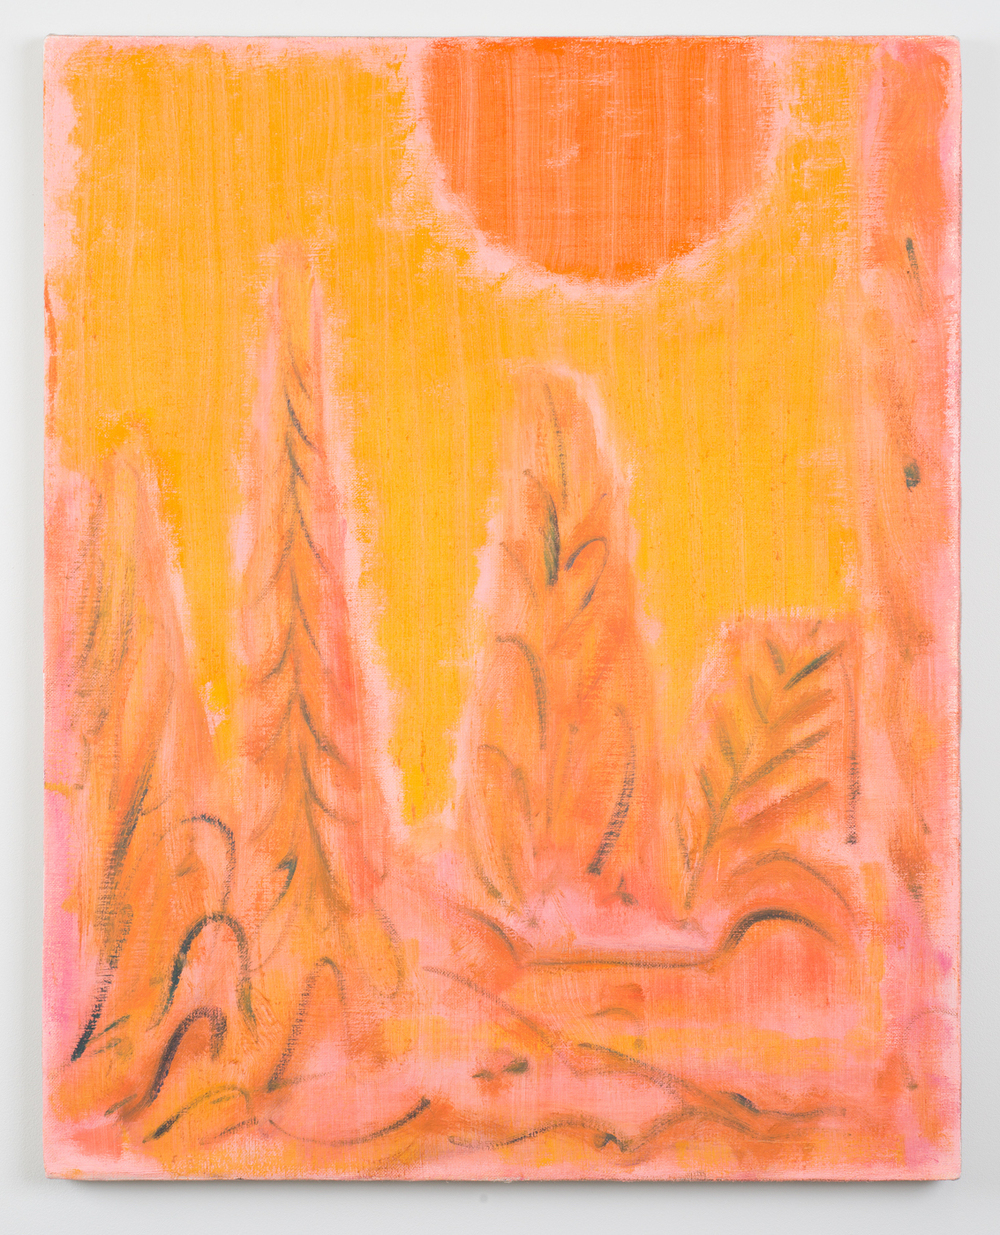 Burnt by the Sun   2016 Oil on linen 30 x 24 in / 76.2 x 60.9 cm